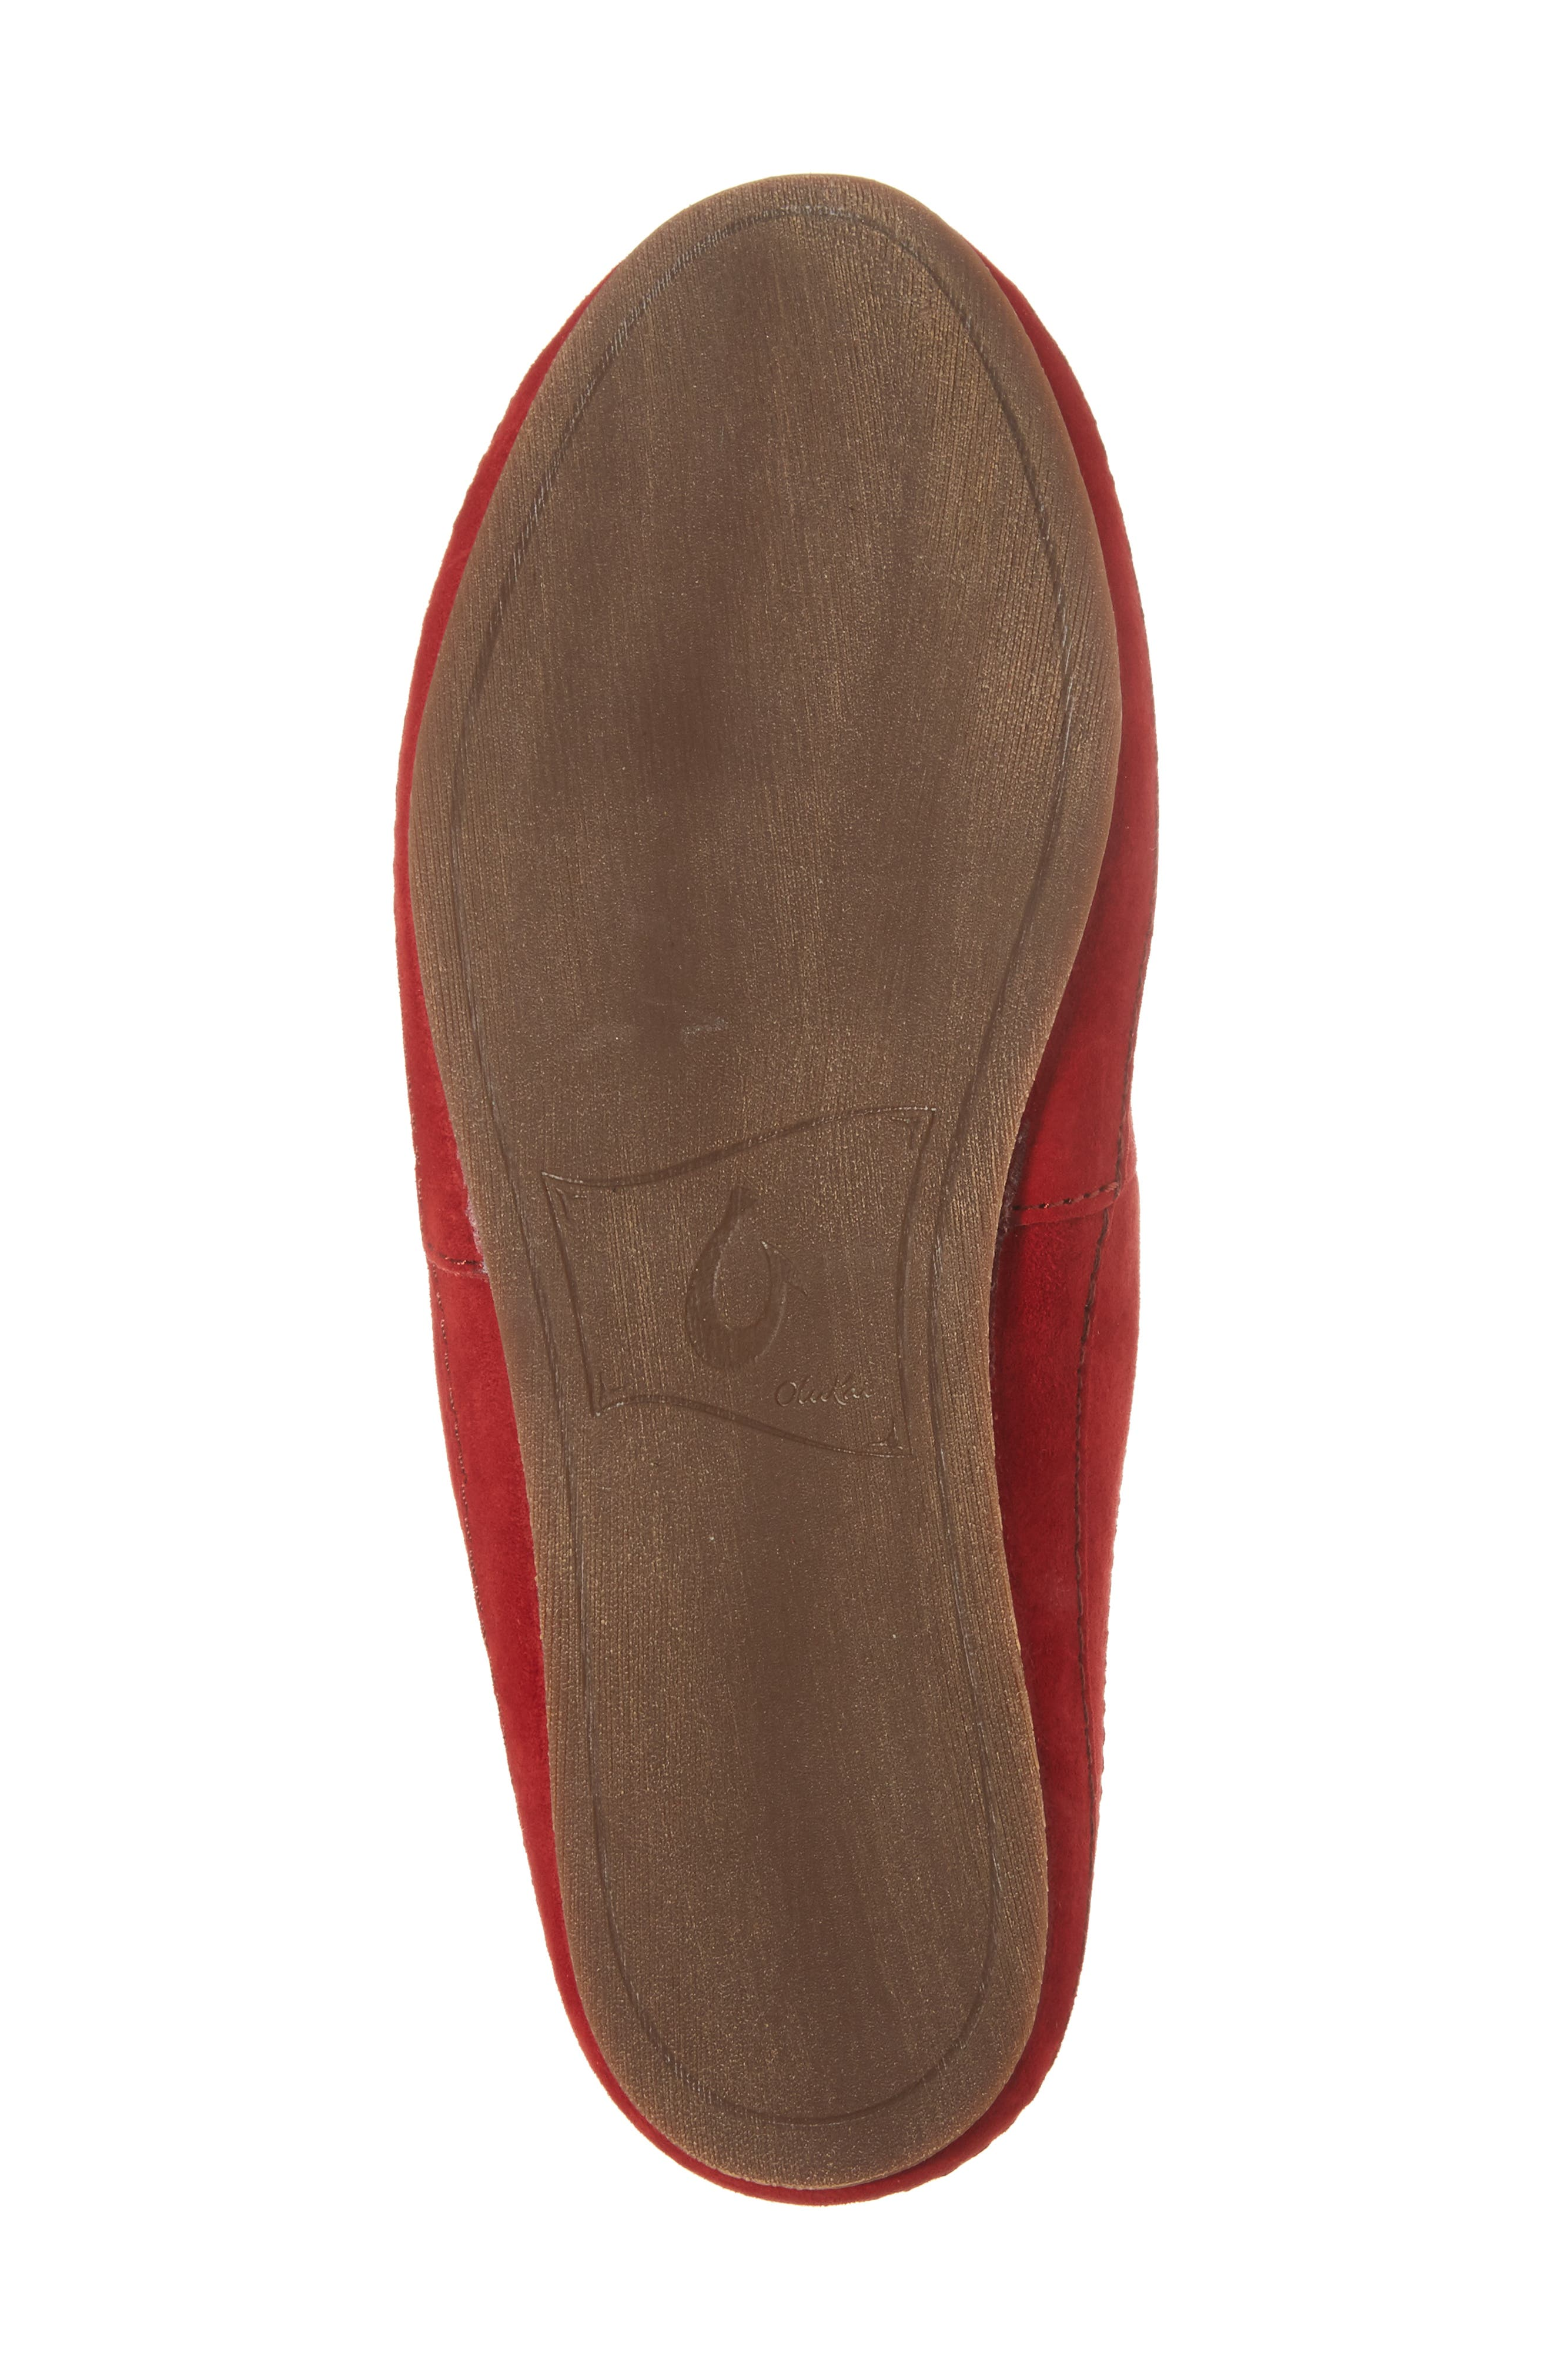 Alaula Genuine Shearling Lined Slipper,                             Alternate thumbnail 6, color,                             Cooler Grey/ Red Mud Leather